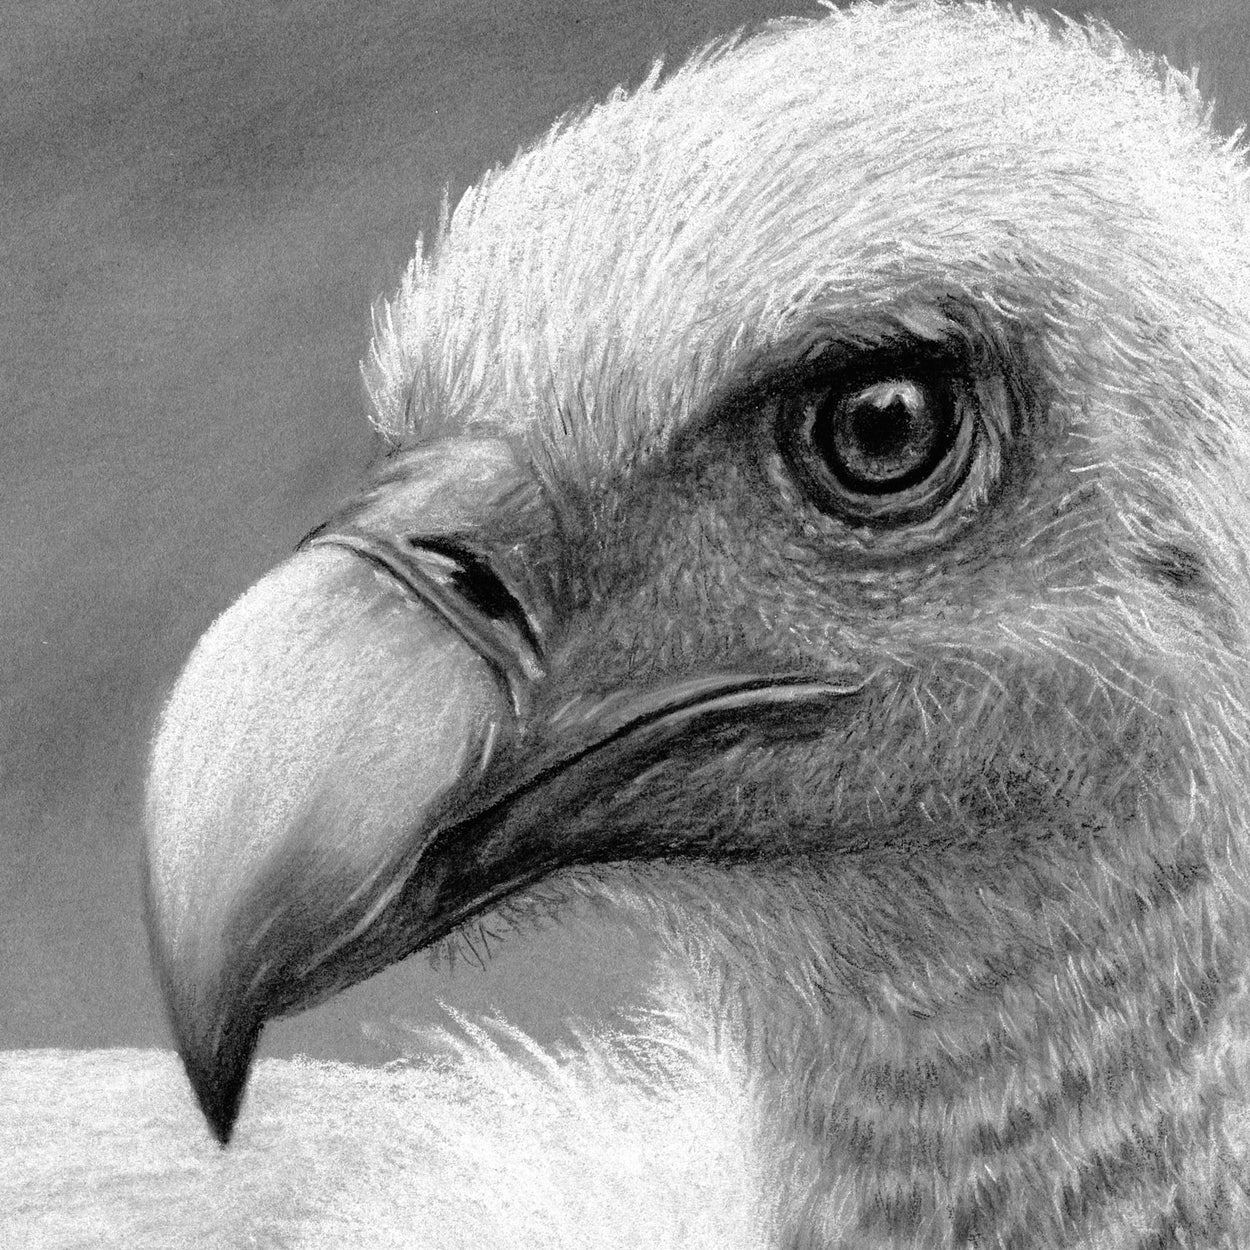 Griffon Vulture Head Close-up 1 - Jill Dimond